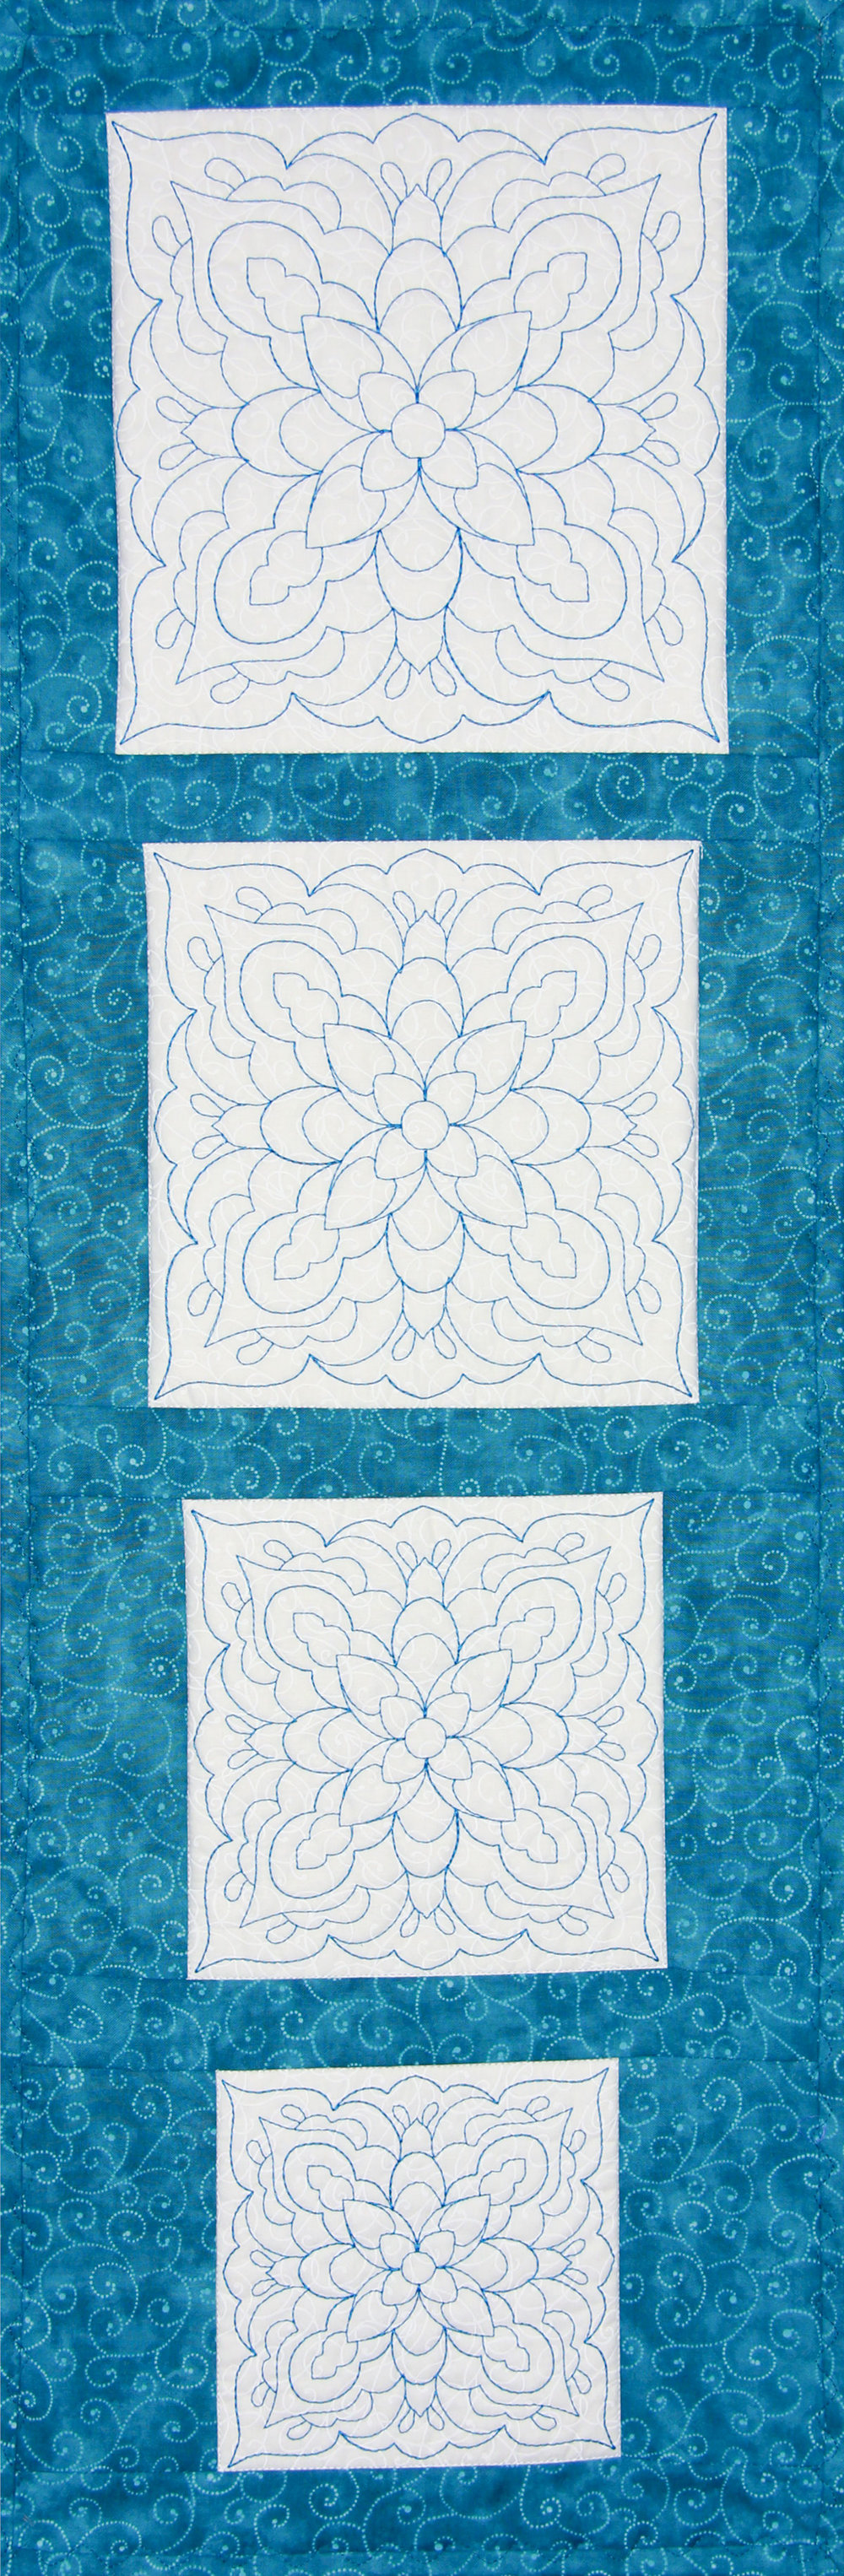 Quilting-Designs-1-Sizing-Banner.jpg